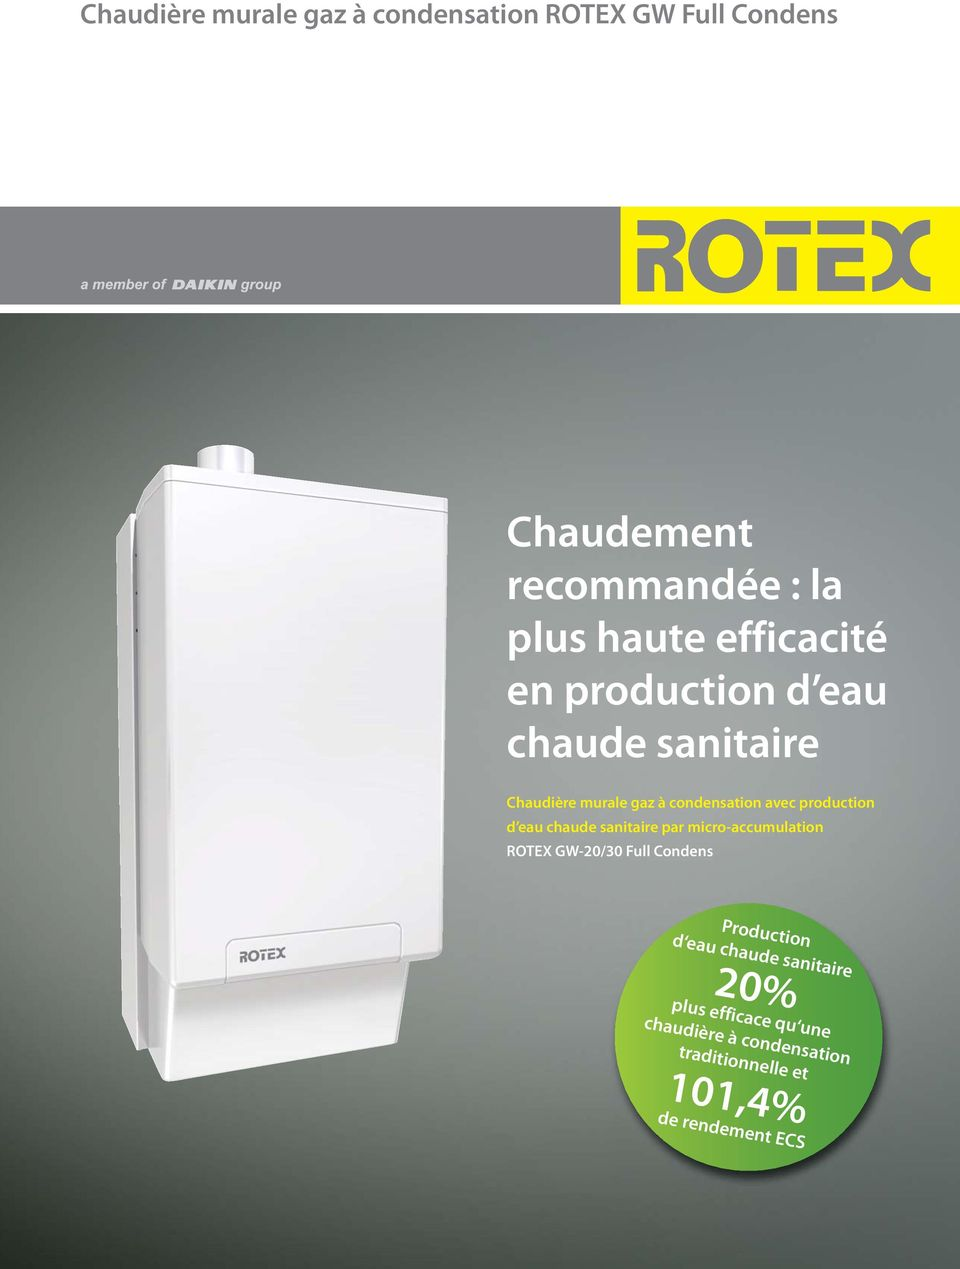 production d eau chaude sanitaire par micro-accumulation ROTEX GW-20/30 Full Condens Production d